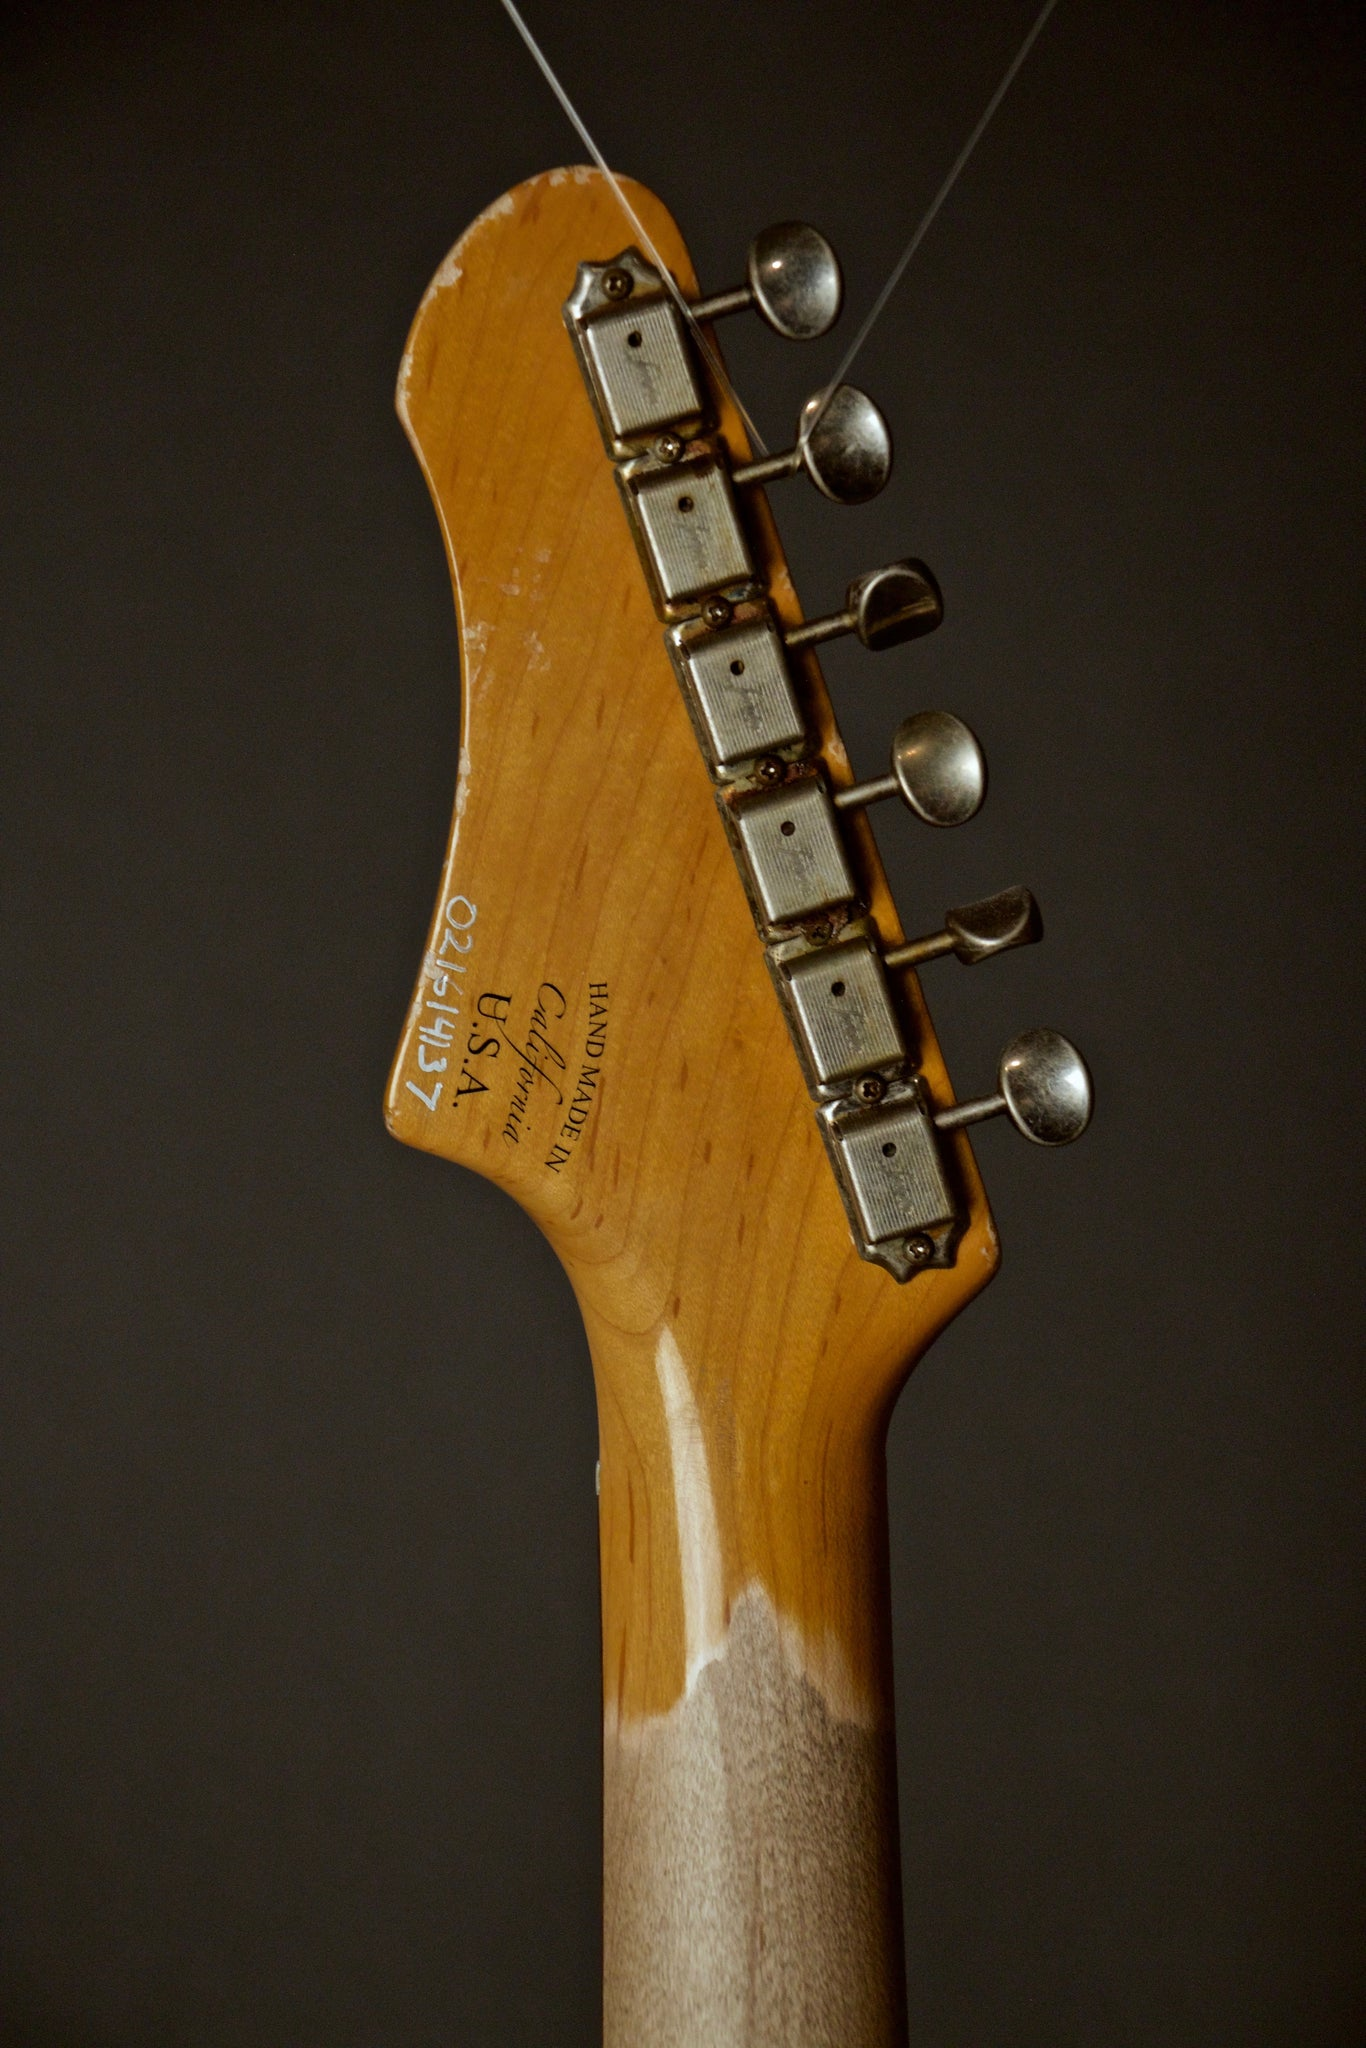 Fano Alt De Facto JM6 Electric Guitar Headstock Back